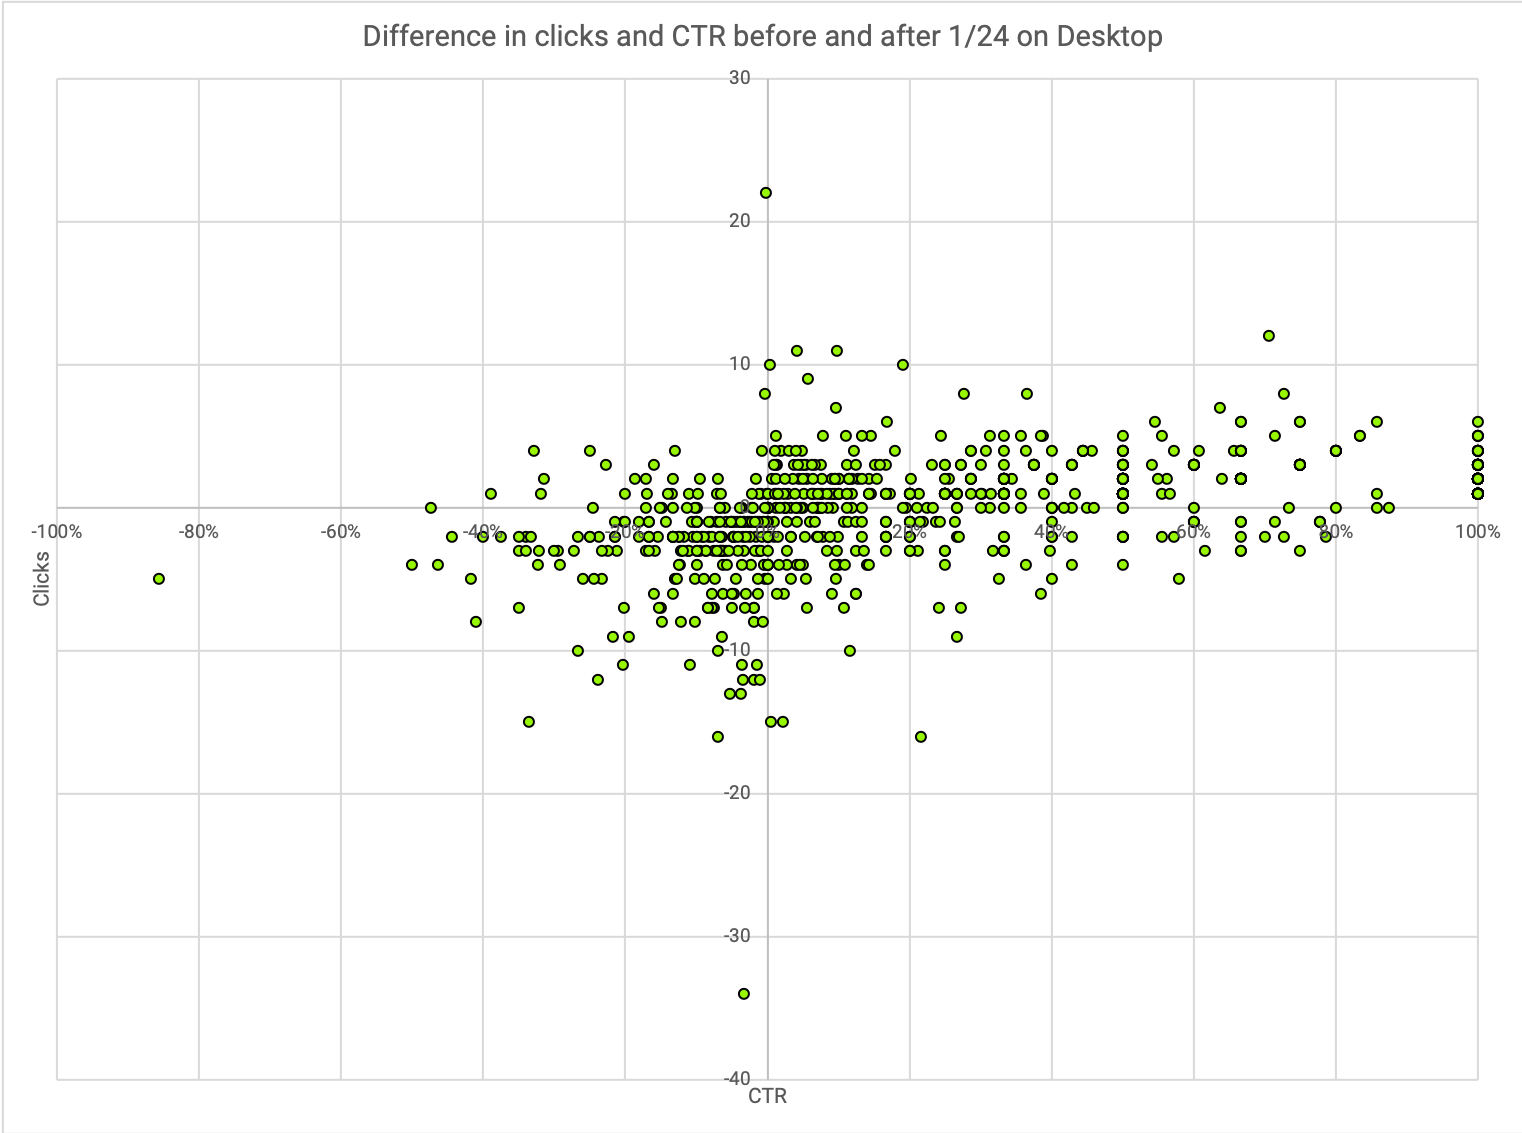 Scatter chart with Click/CTR changes before and after 1/24 for desktop